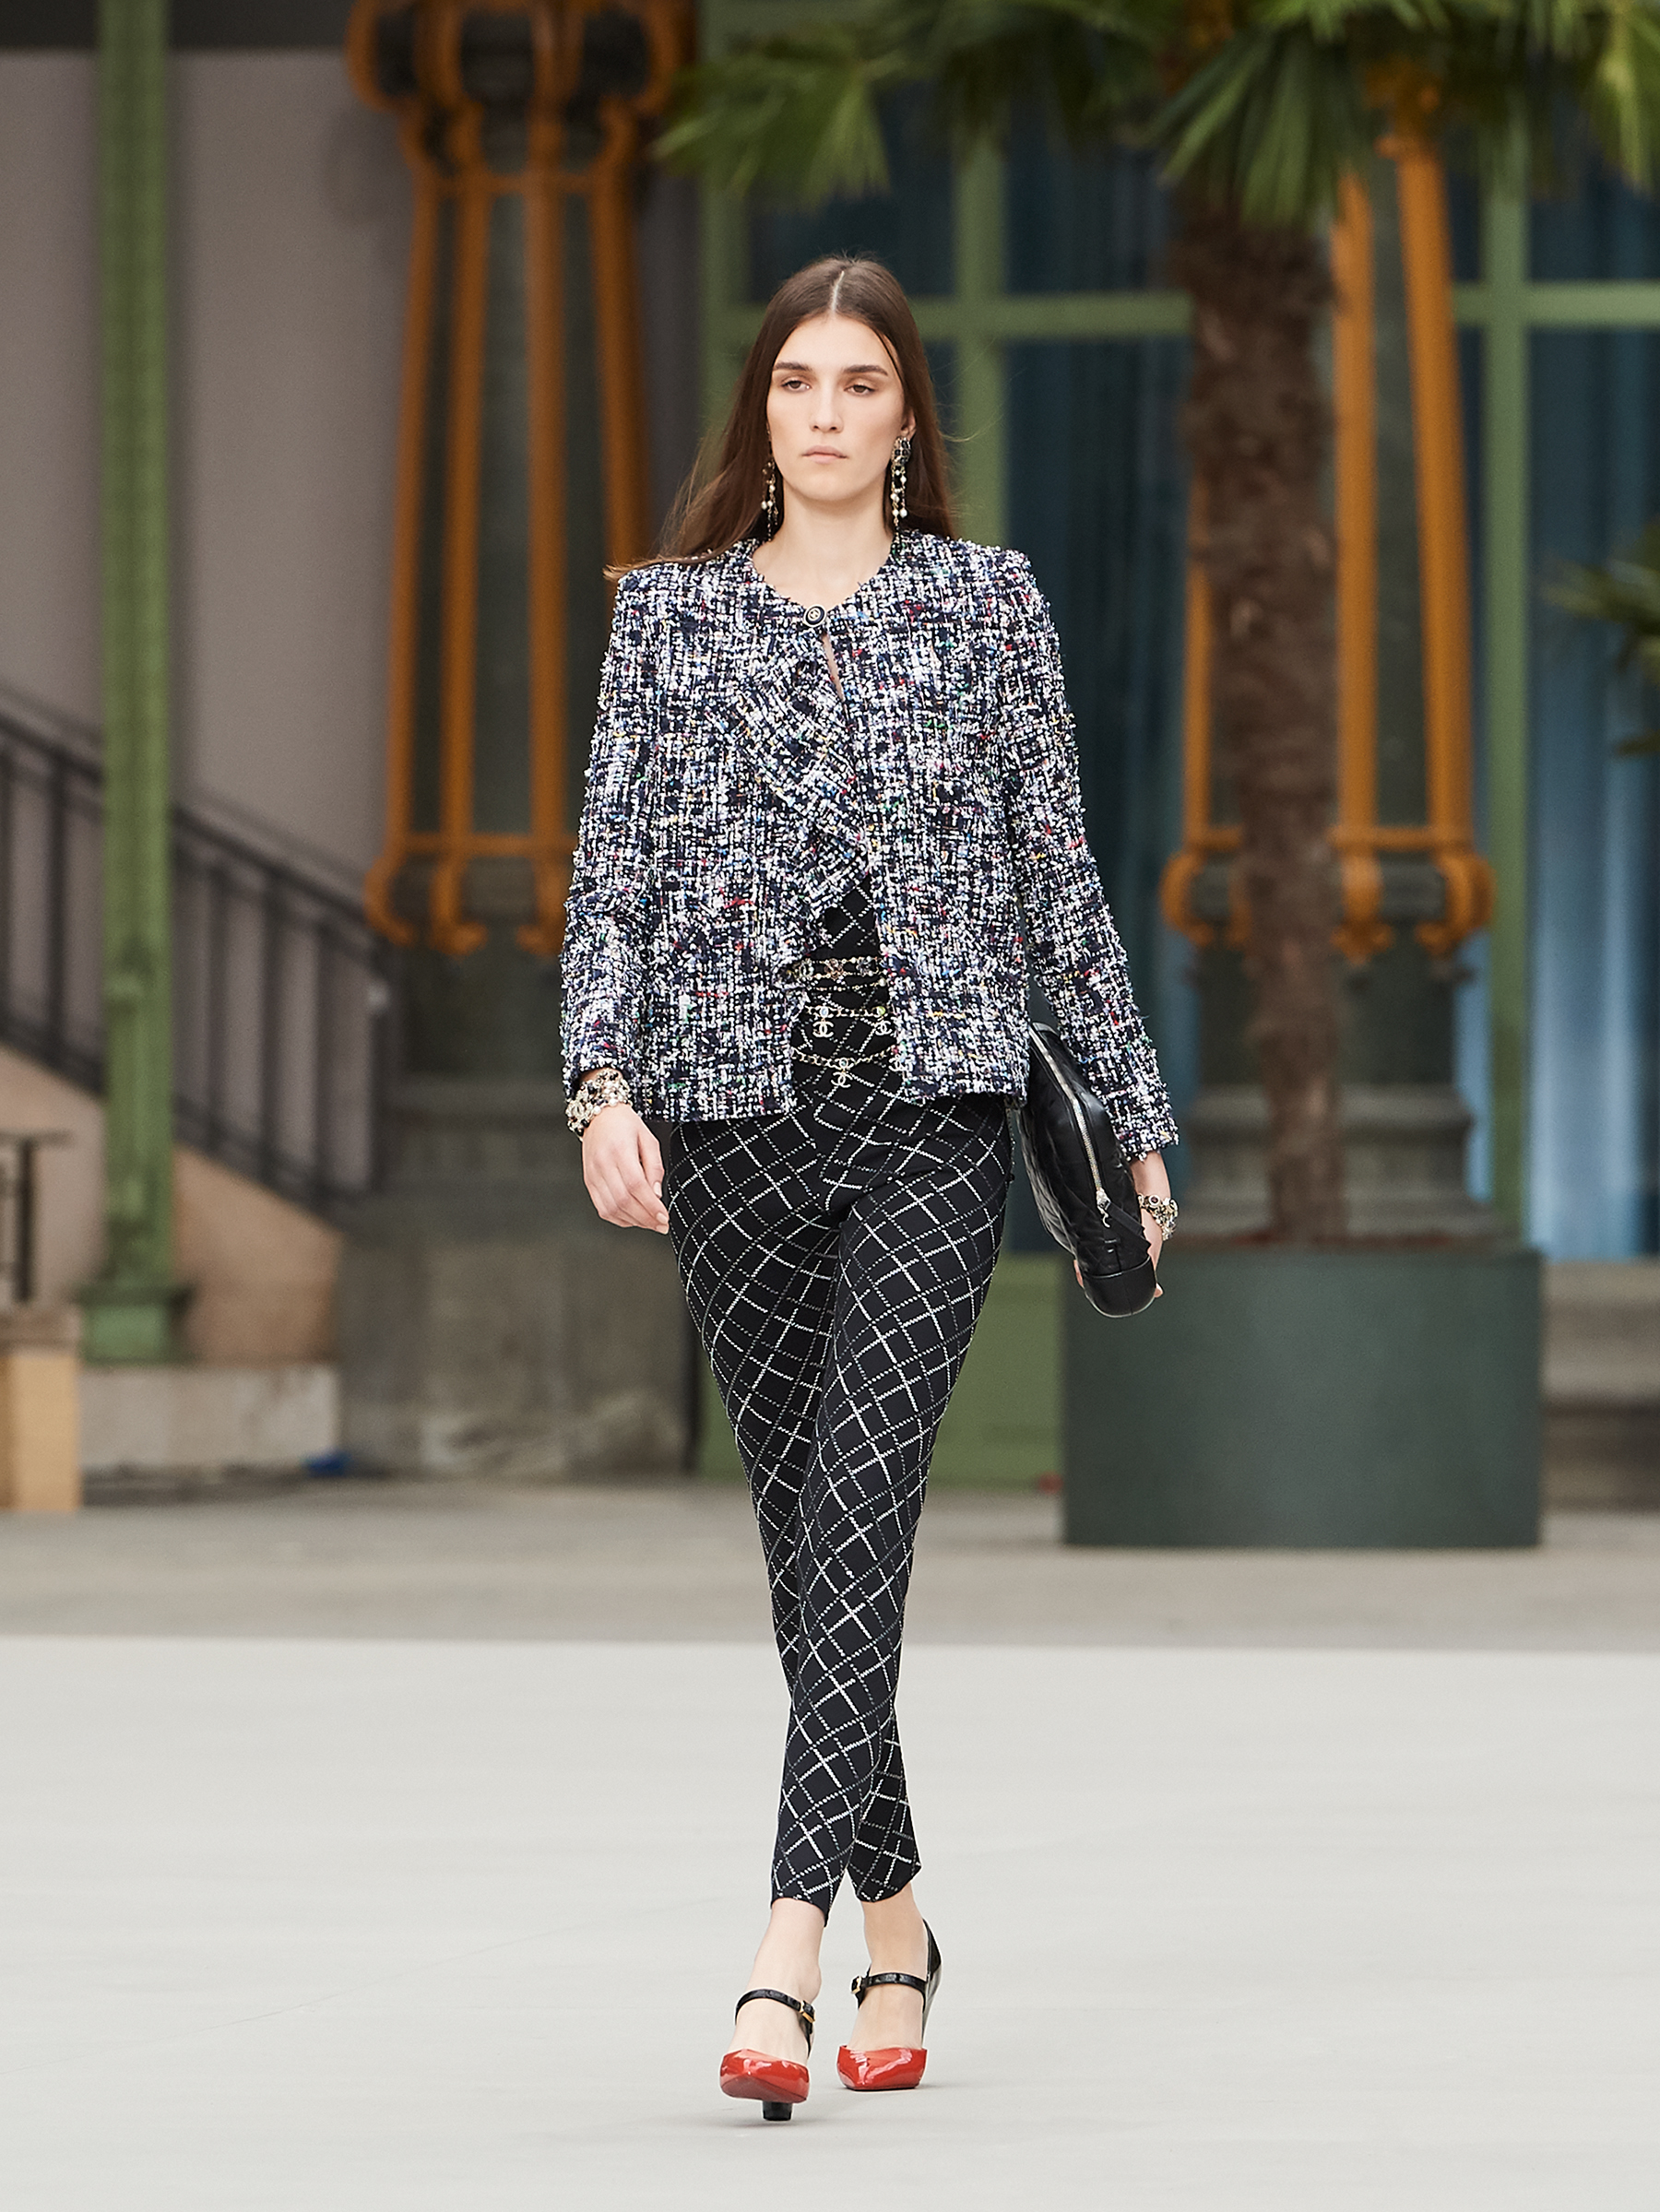 Chanel Cruise 2020 Fashion Show | The Impression